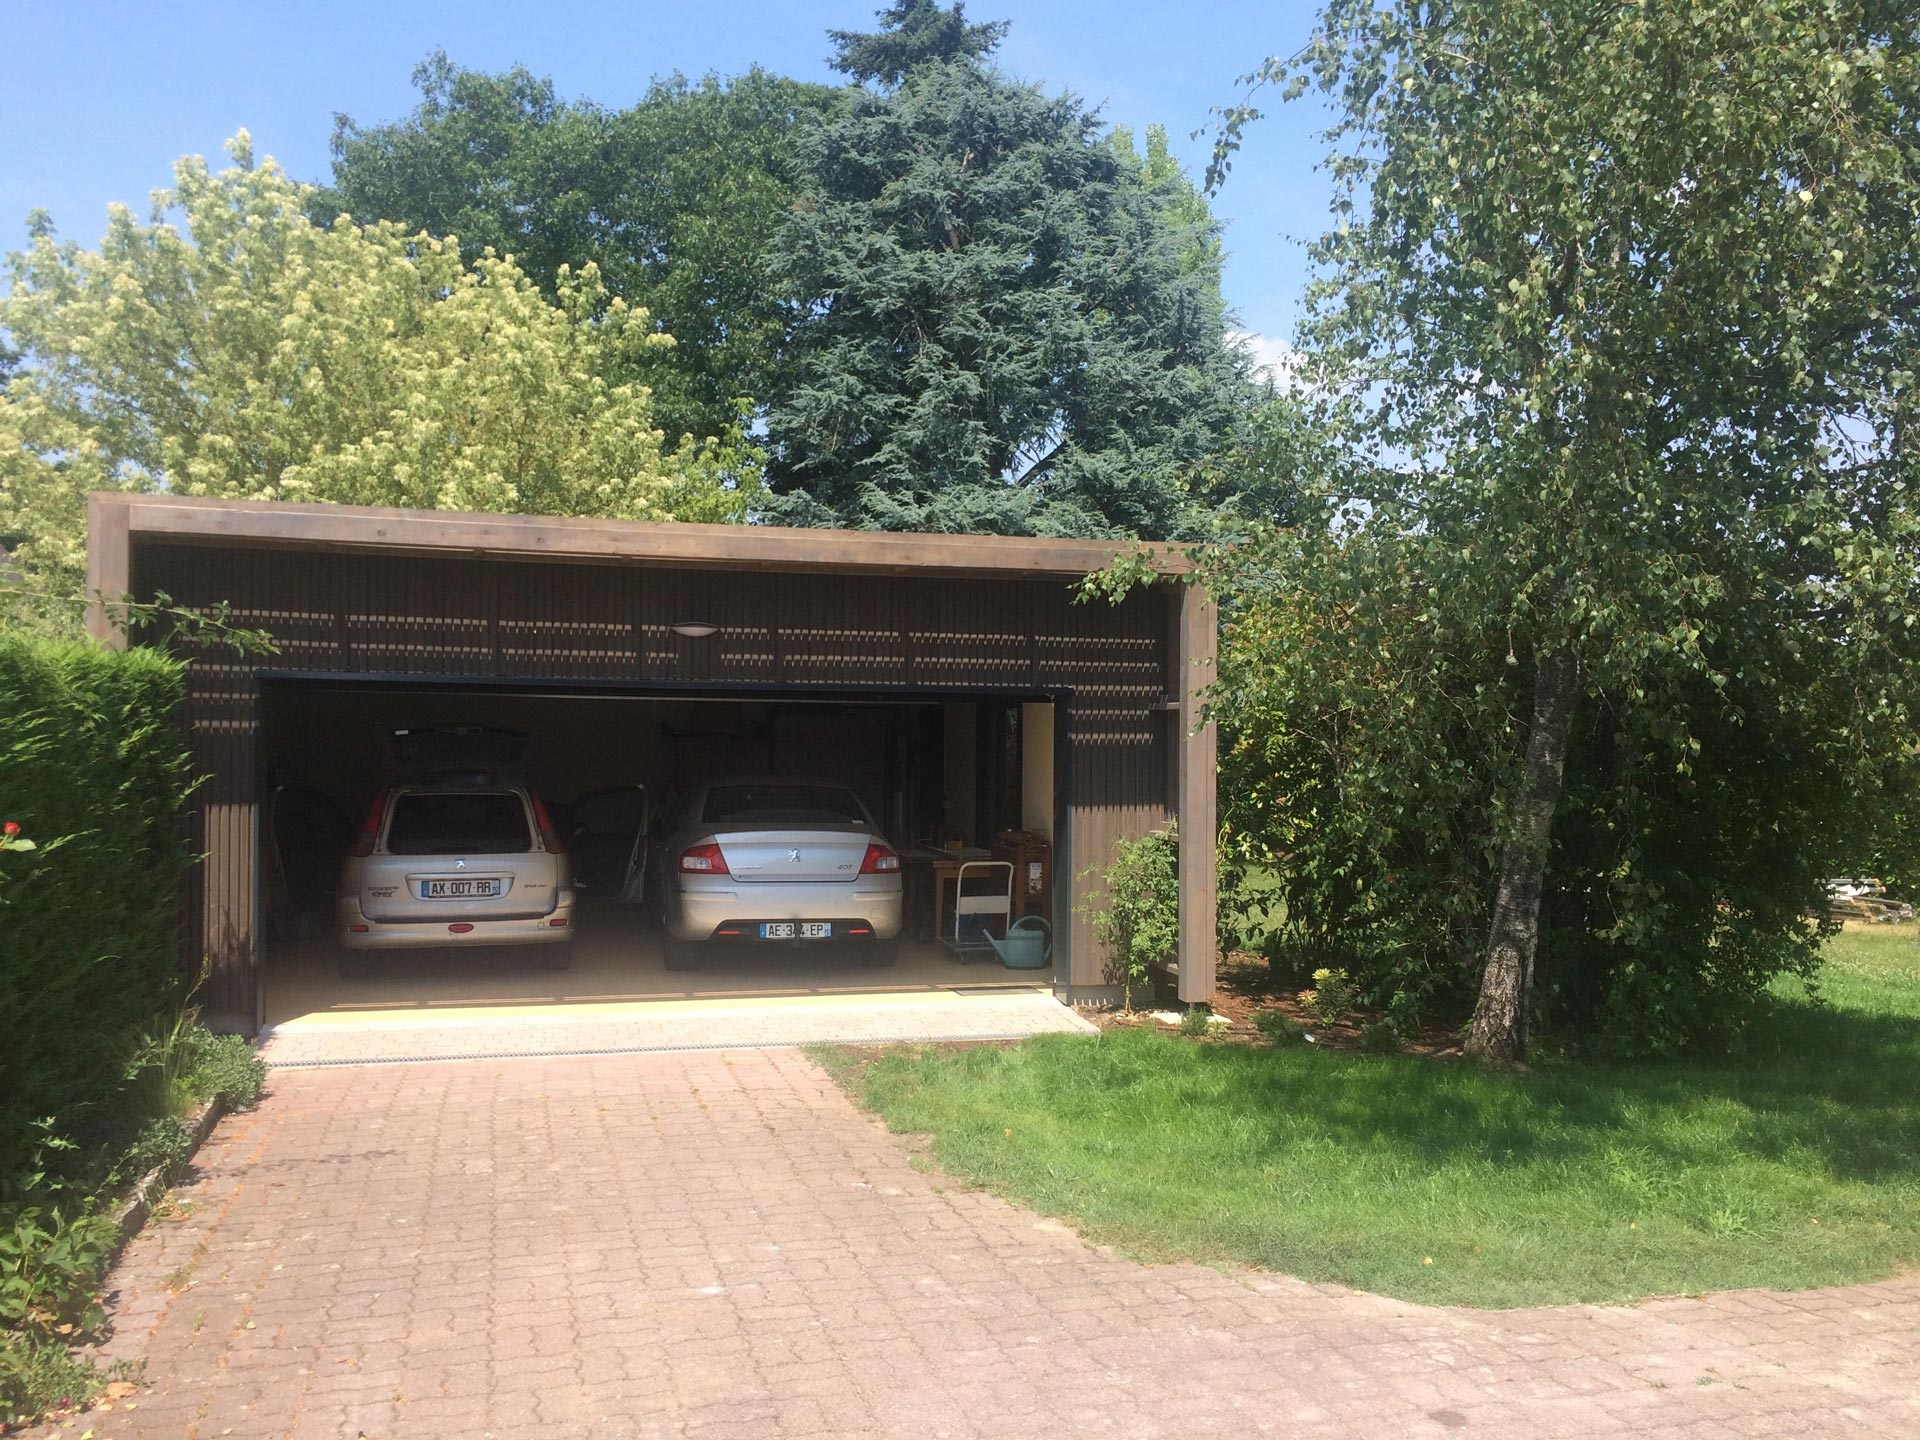 Extension garage toit plat en ossature bois olivet 45210 for Construction toit plat